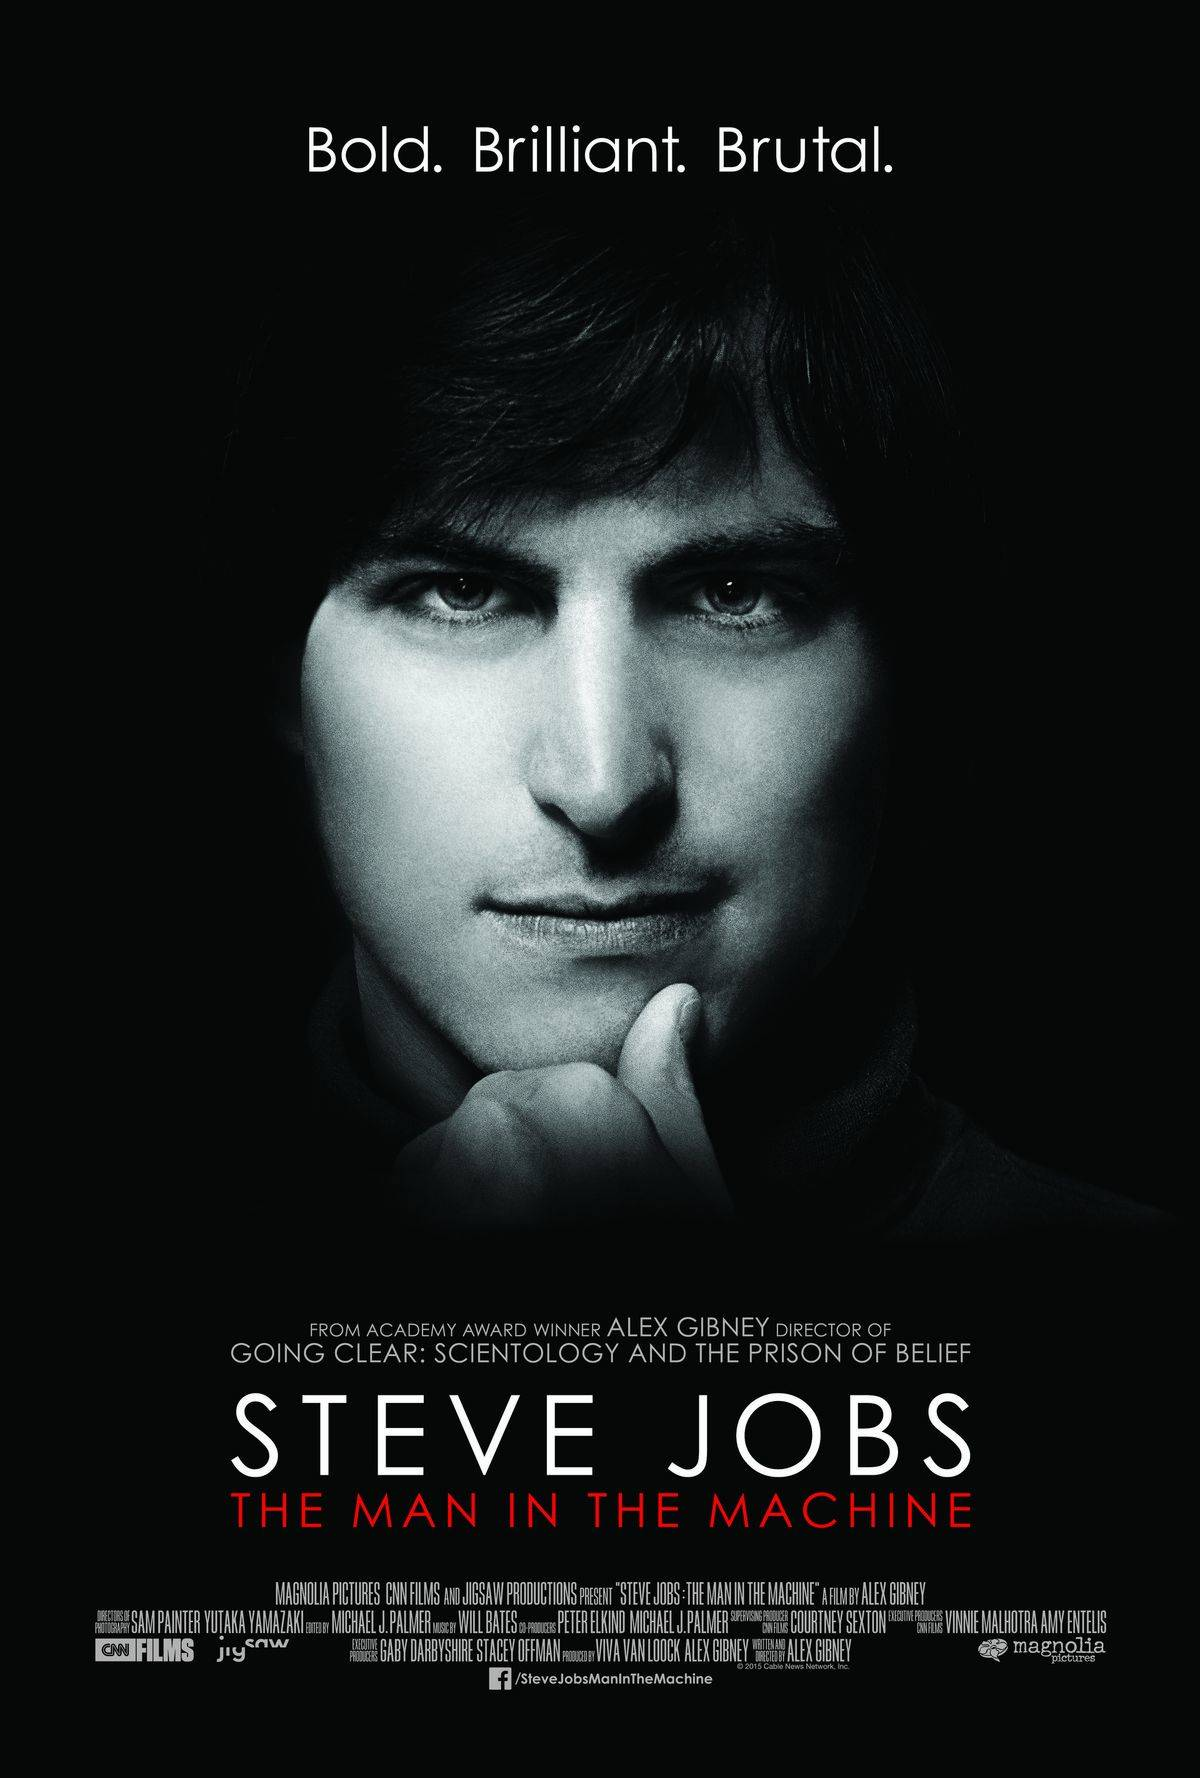 Alex Gibney's Steve Jobs documentary opens Sept. 4th.